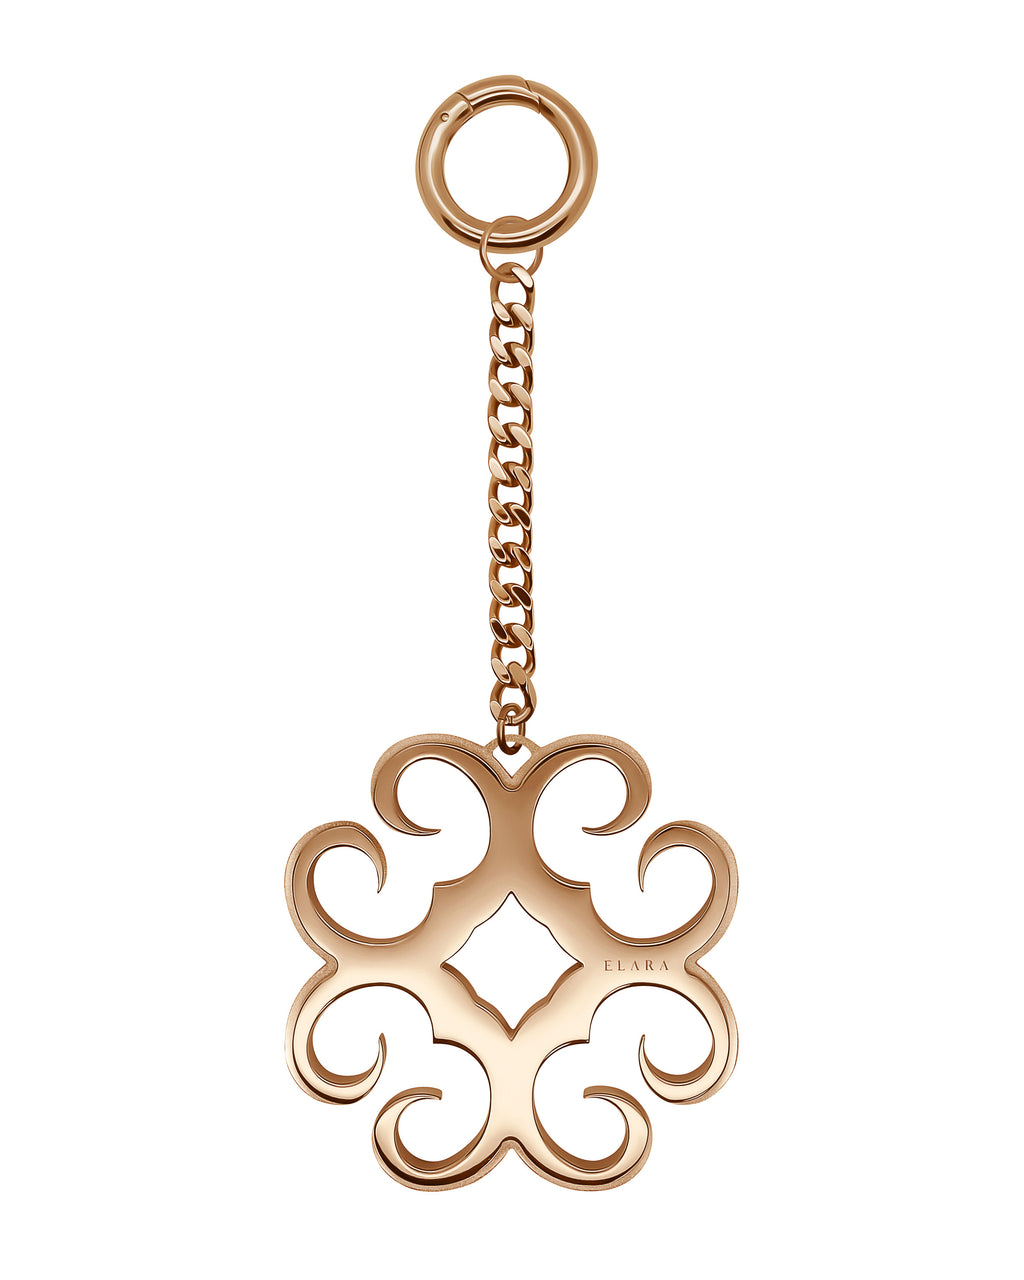 Elara Jewellery - Monogram Bag Charm